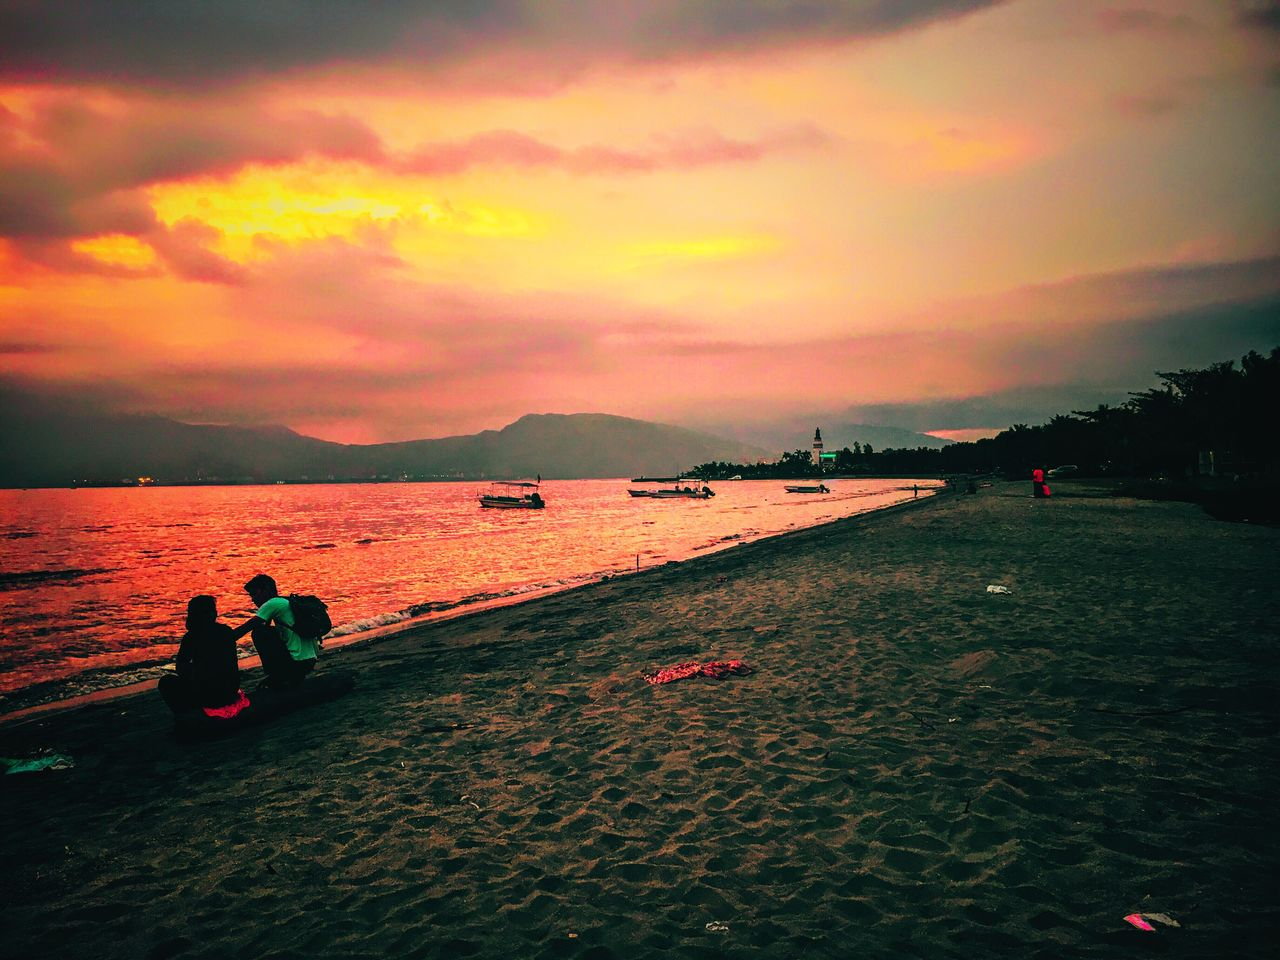 Sunset lovers in Subic Eyeem Philippines TravelPhilippines EyeEm Nature Lover Sky Sunset Water Beauty In Nature Scenics Mountain Nature Cloud - Sky Outdoors Nautical Vessel Sea Tranquil Scene Beach Real People Tranquility Men Togetherness Day People